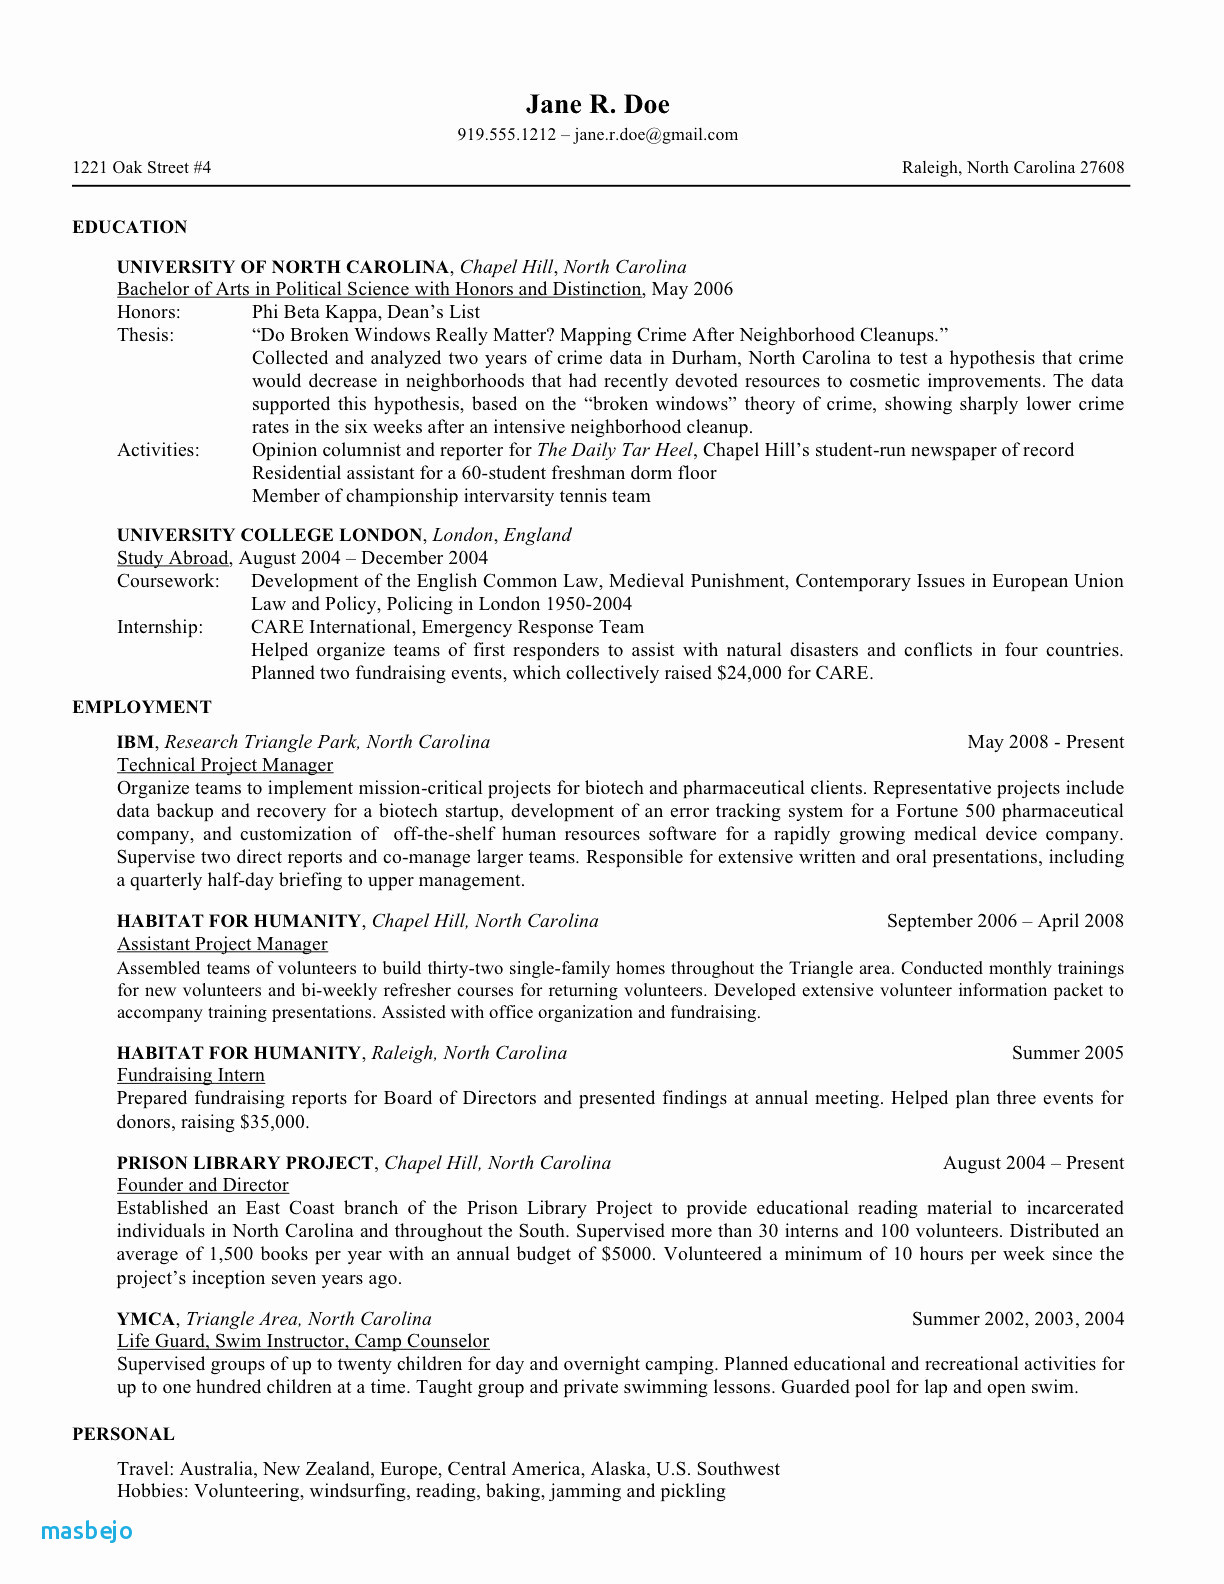 Interests On Resume - Hobbies and Interests for Resume Beautiful Grapher Resume Sample